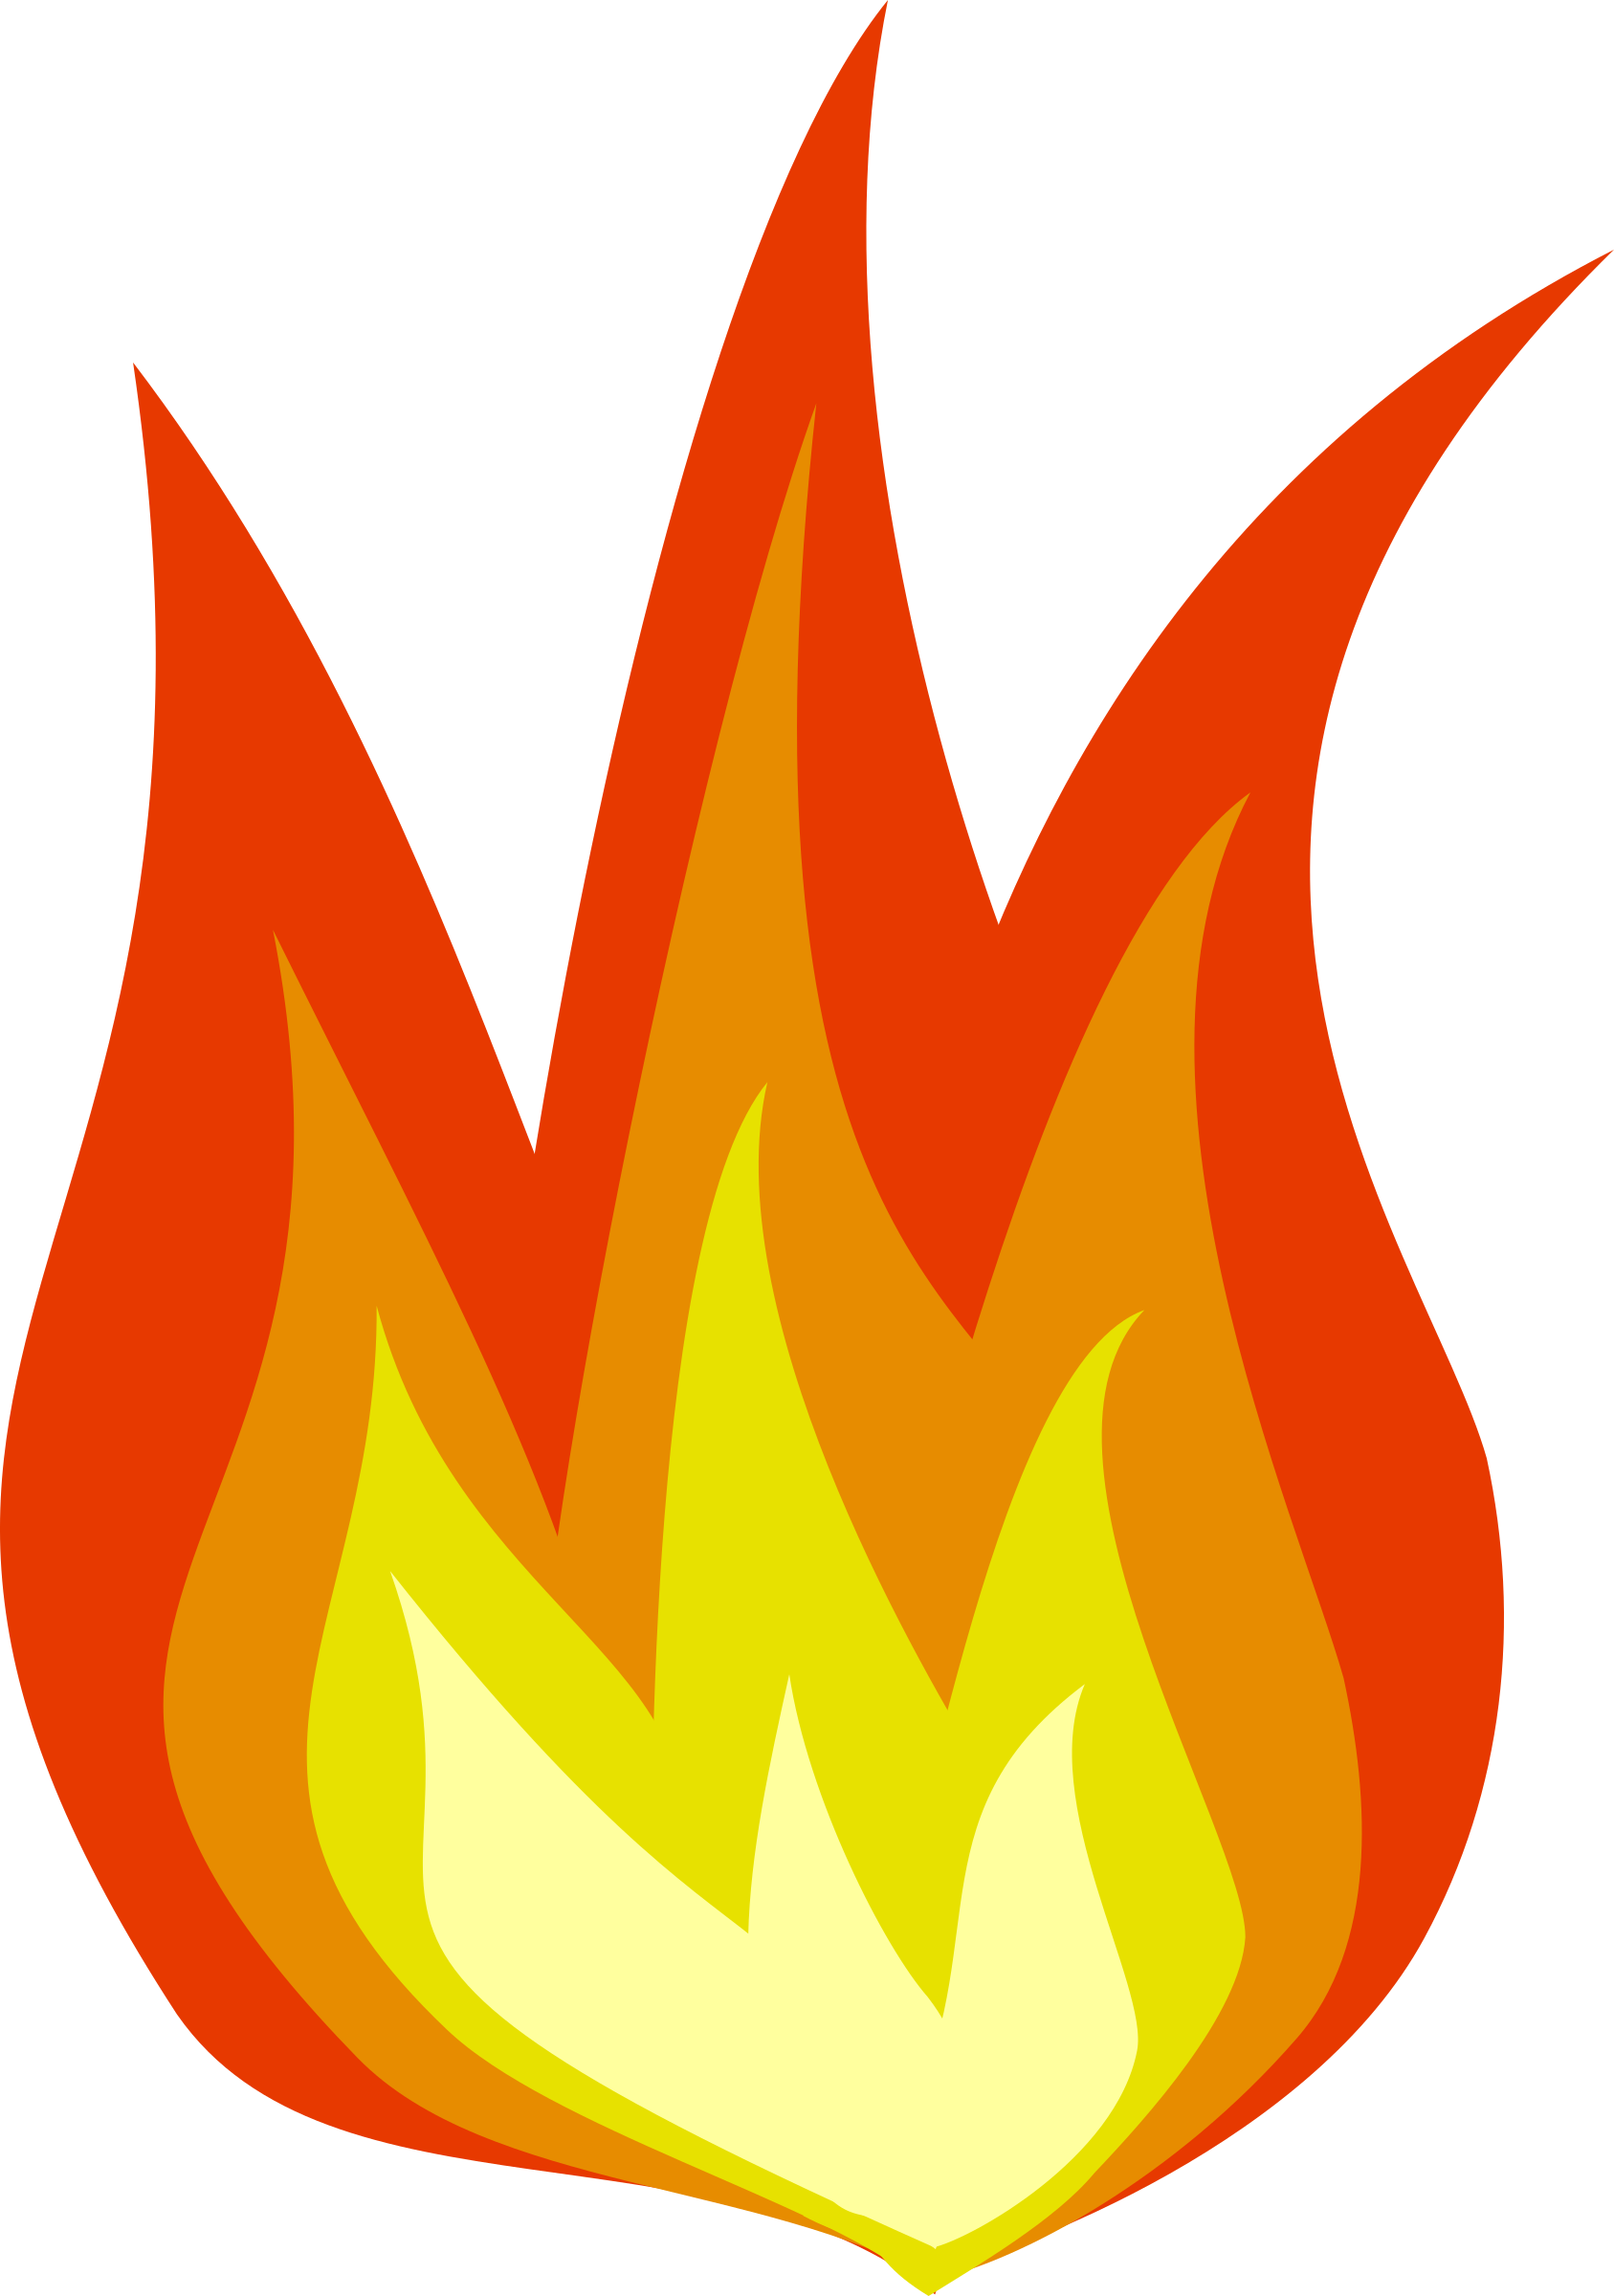 Fire clip art png. Clipart icon big image